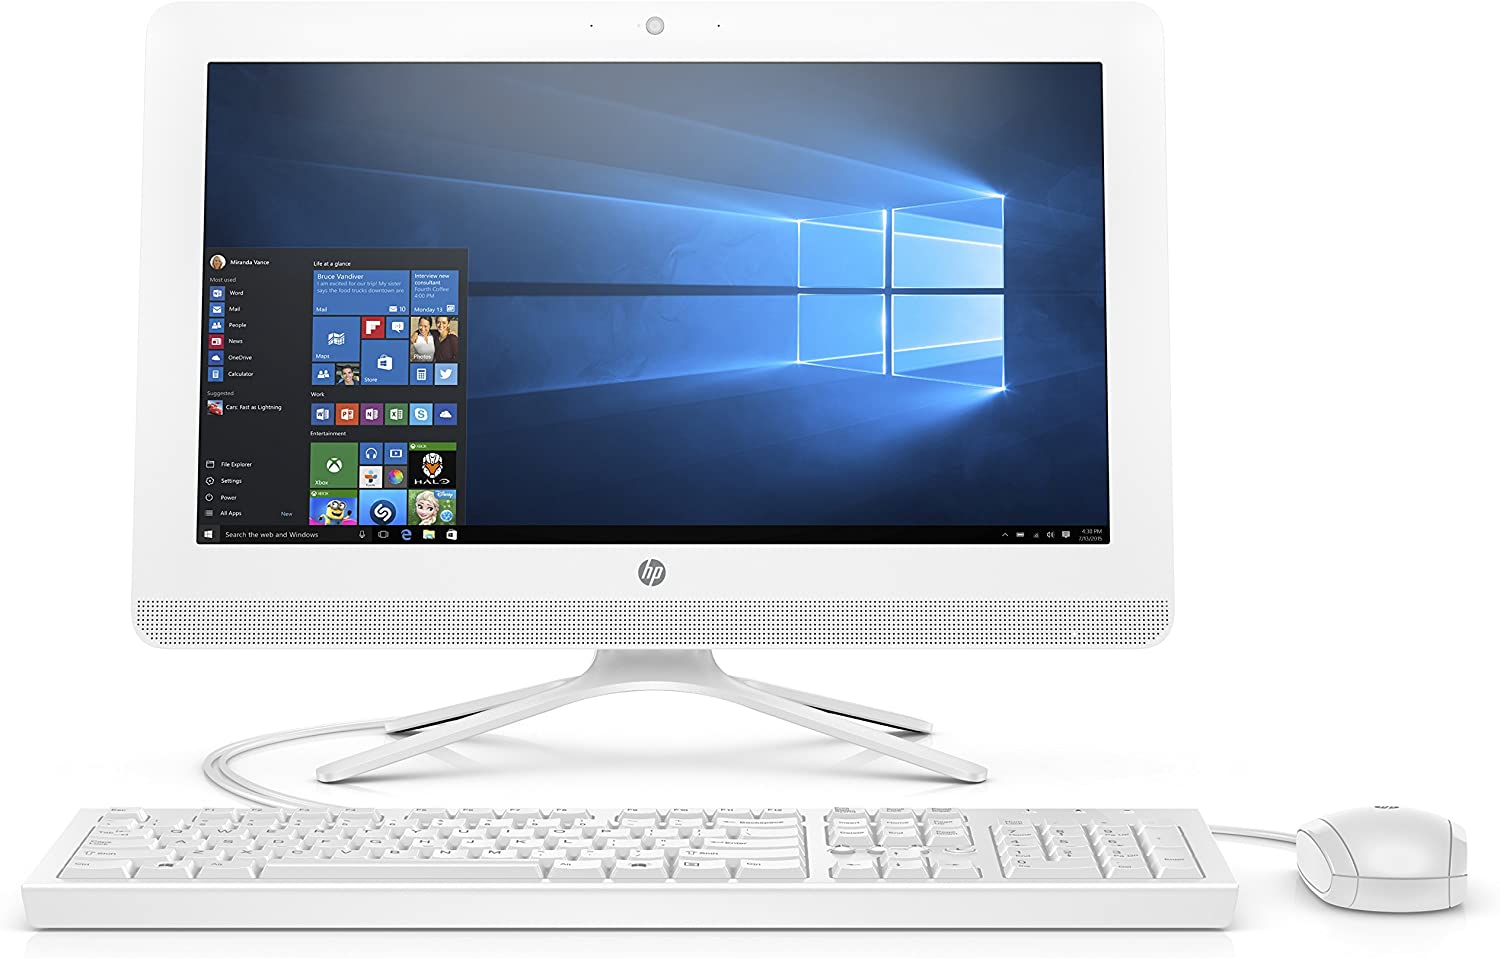 HP 20-inch All-in-One Computer, Intel Celeron J4005, 4GB RAM, 1TB Hard Drive, Windows 10 (20-c410, White) - 3KZ89AA#ABA